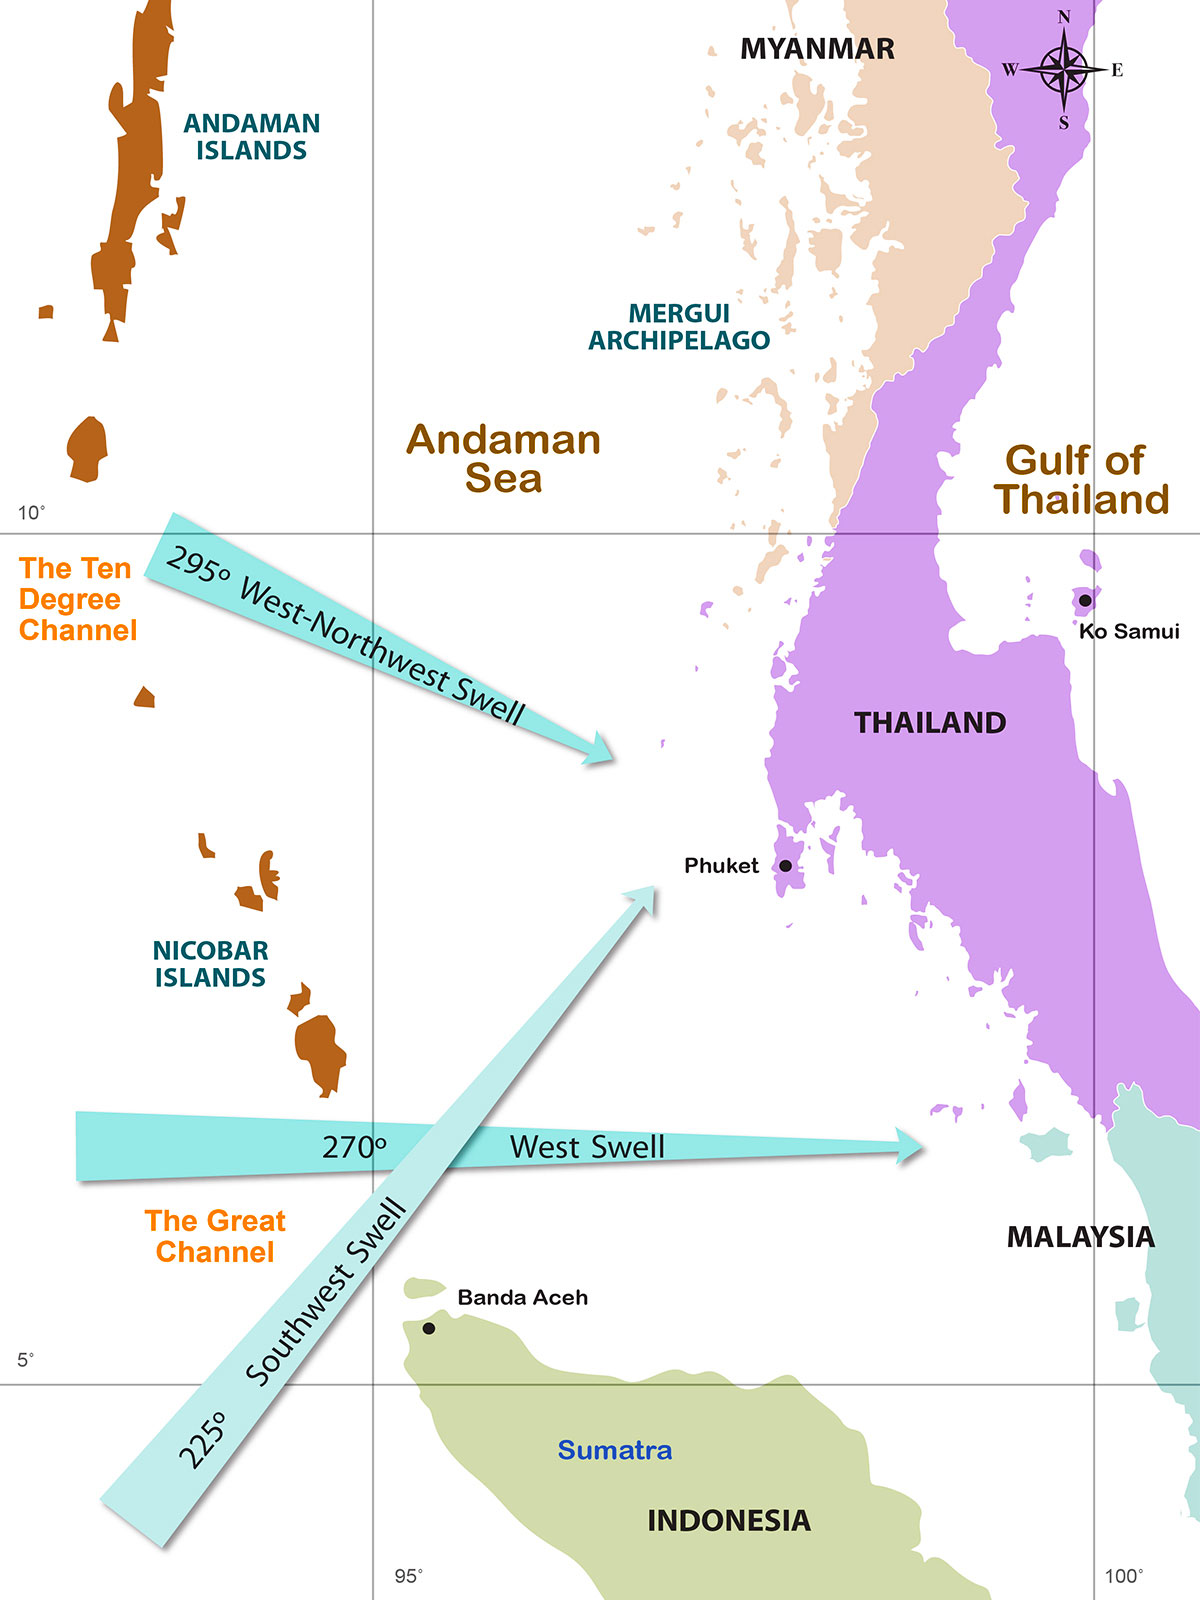 Andaman Coast Swell Windows | Surfing Thailand | Surf Tourism Research | Dr. Steven A. Martin